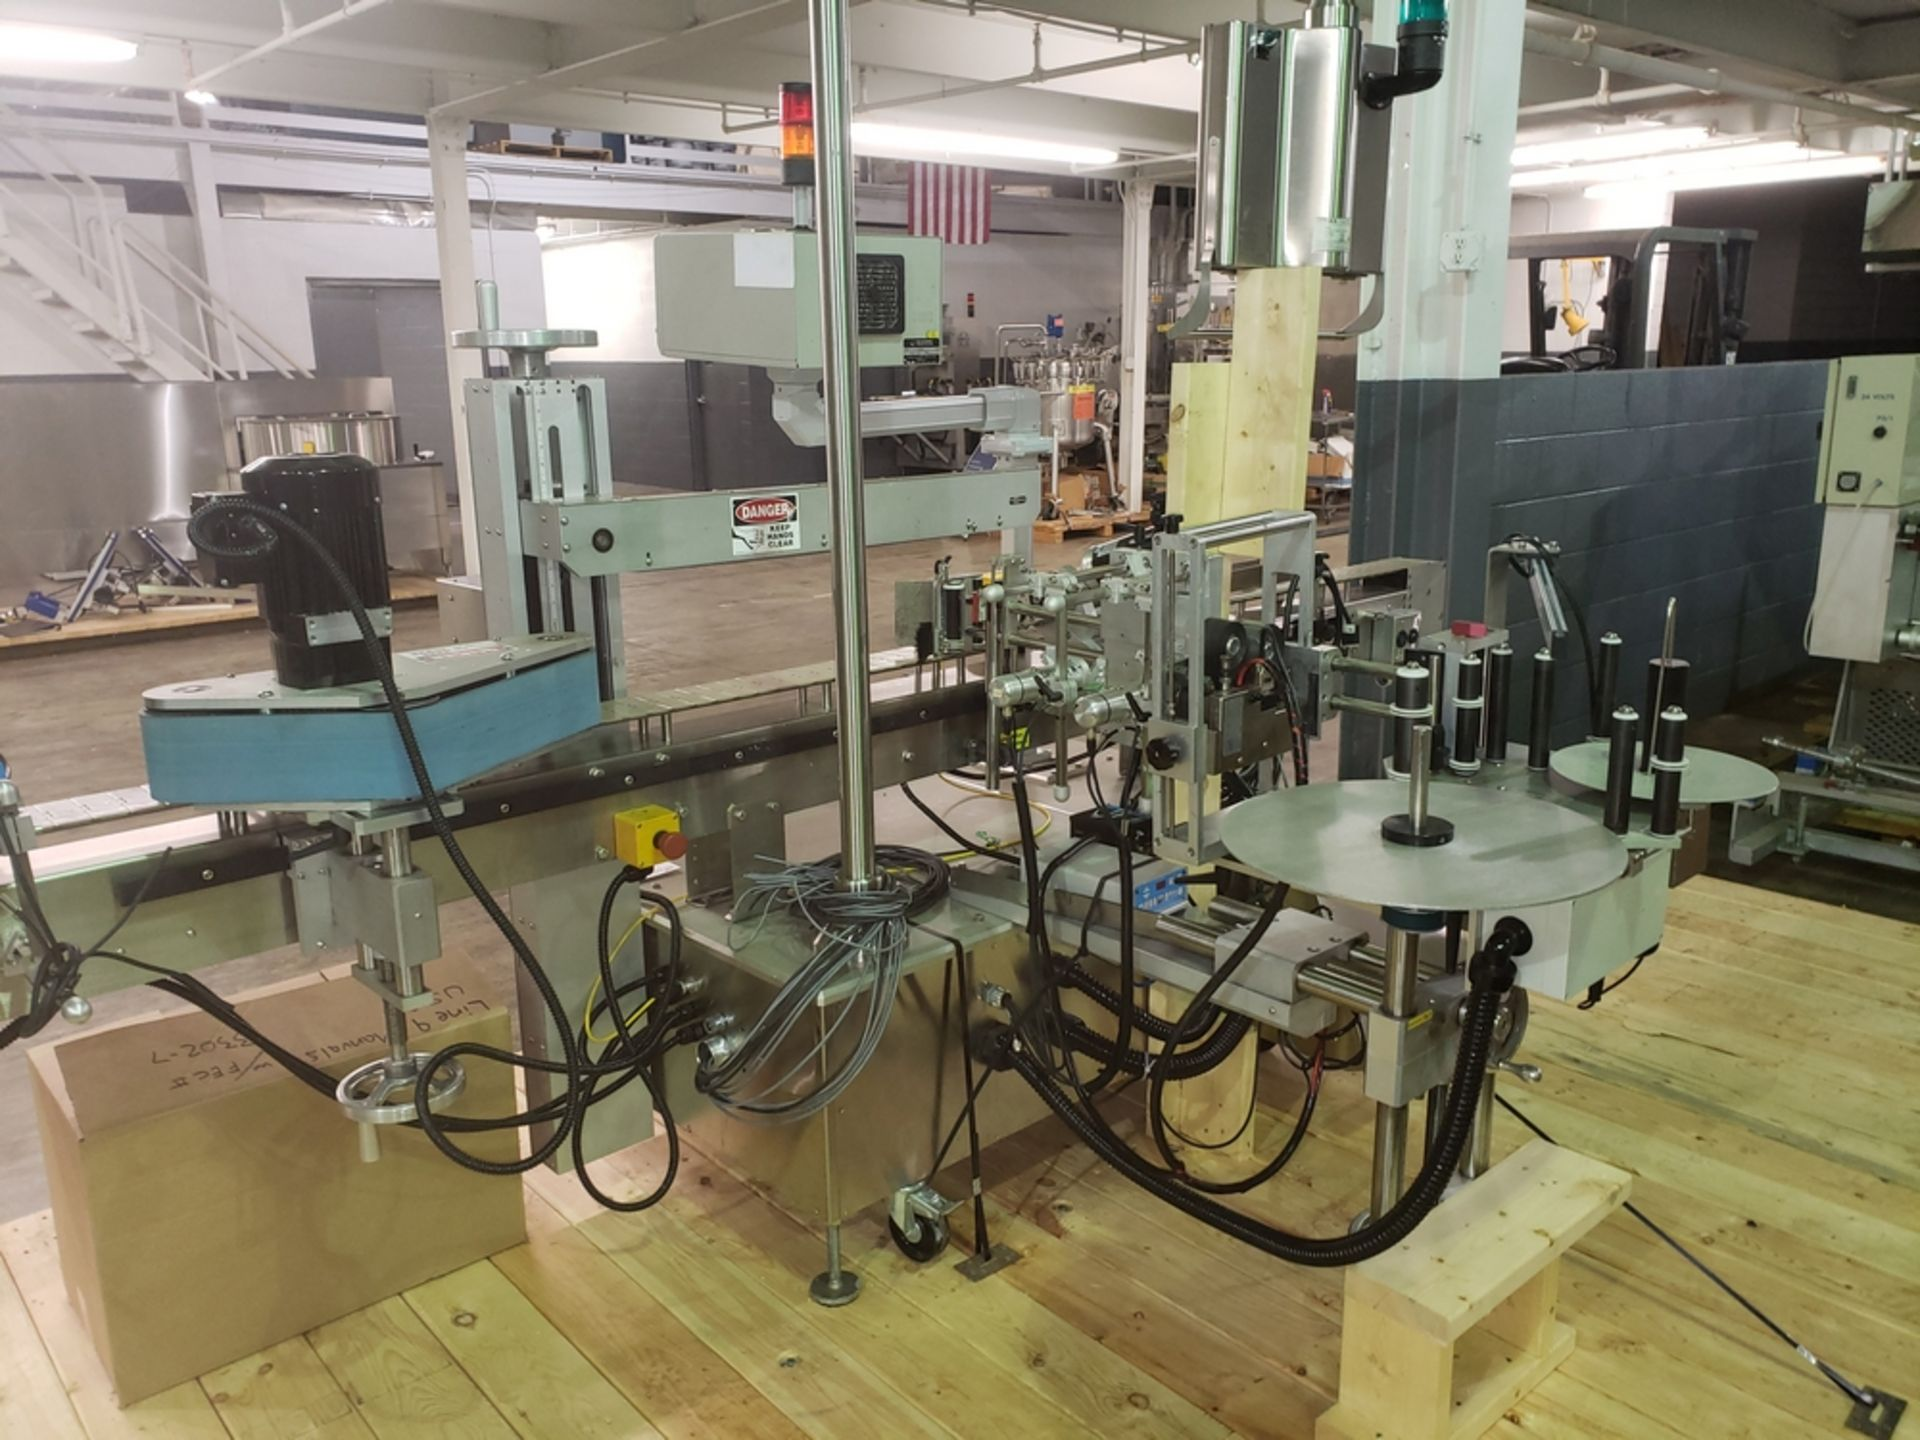 Lot 14 - Quadrel wrap around labeler, model Versaline, single head with Open Date coder, timing feed screw,